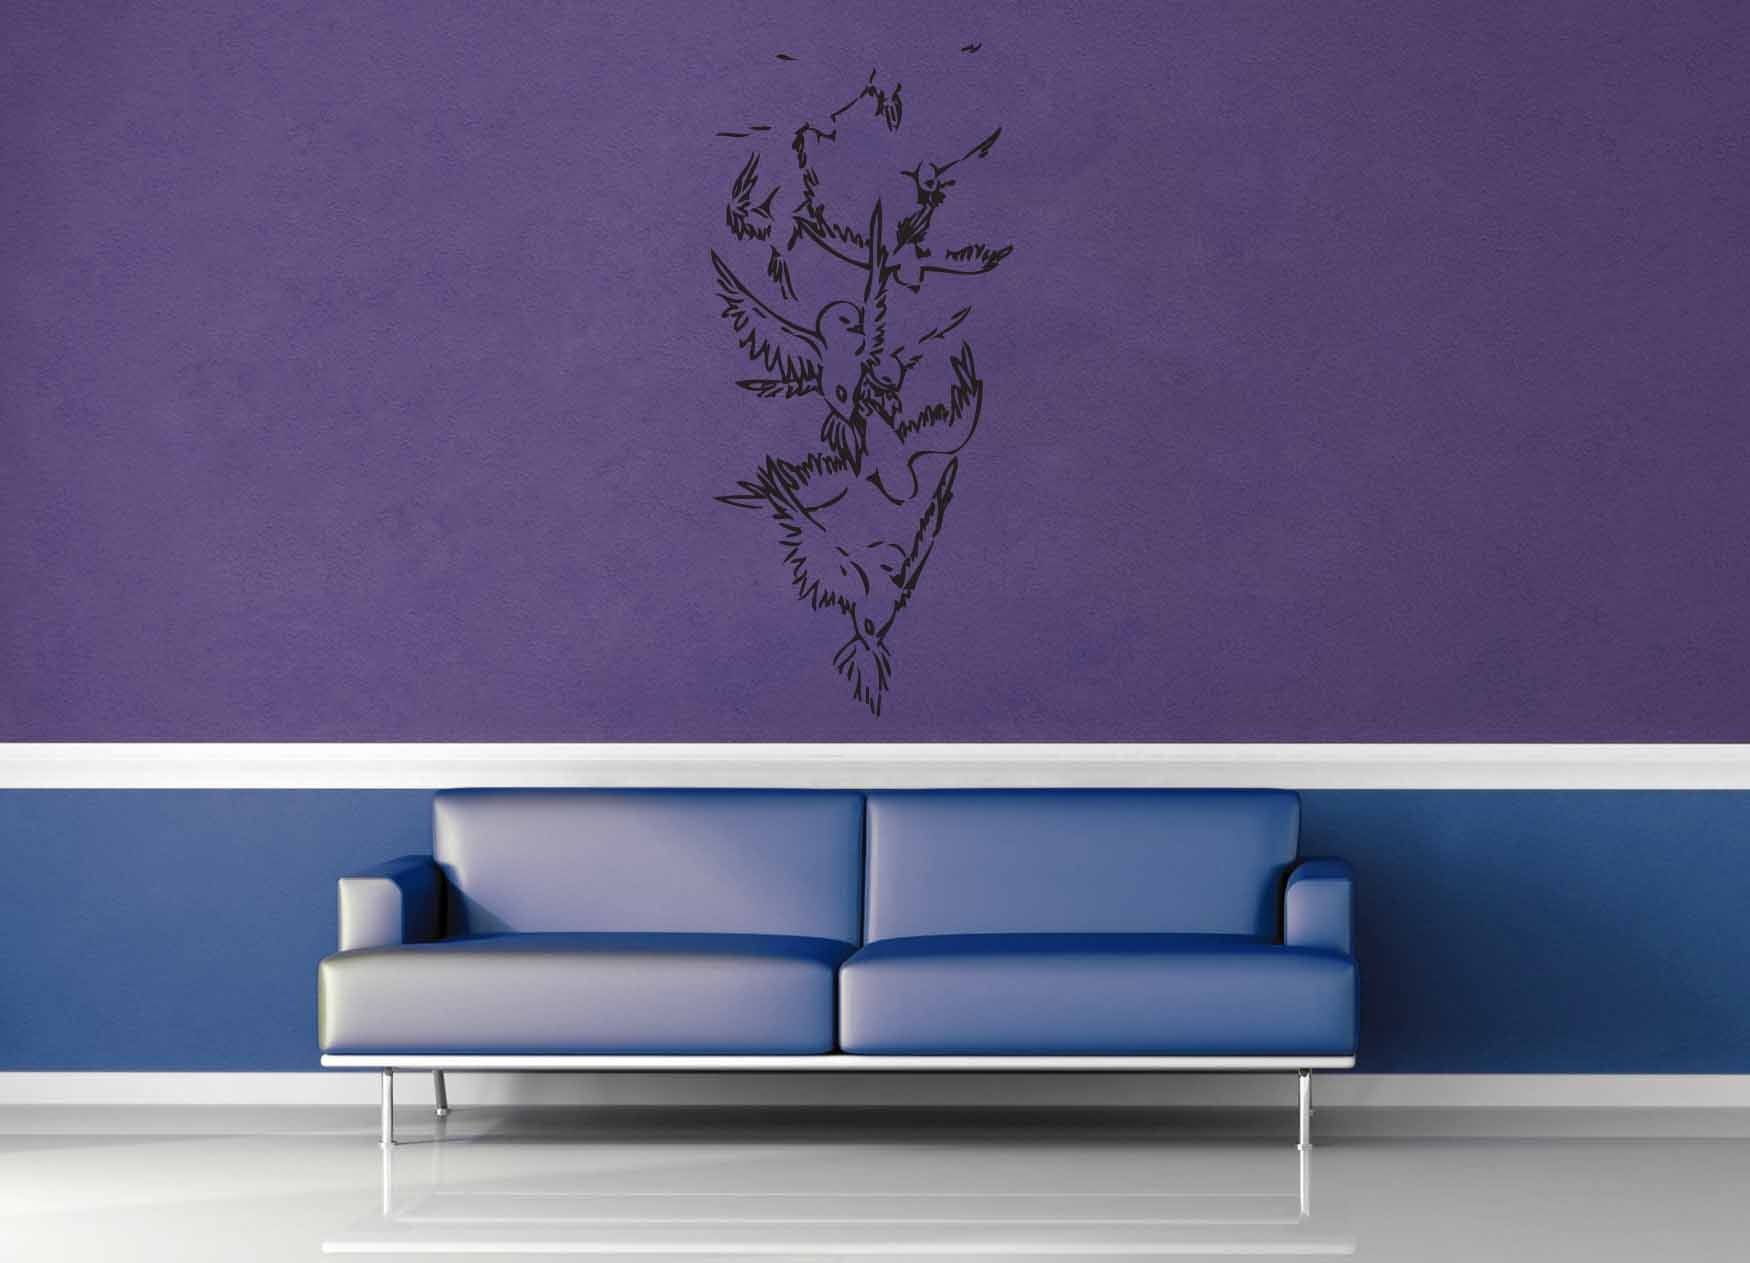 Falling Birds - Wall Decal